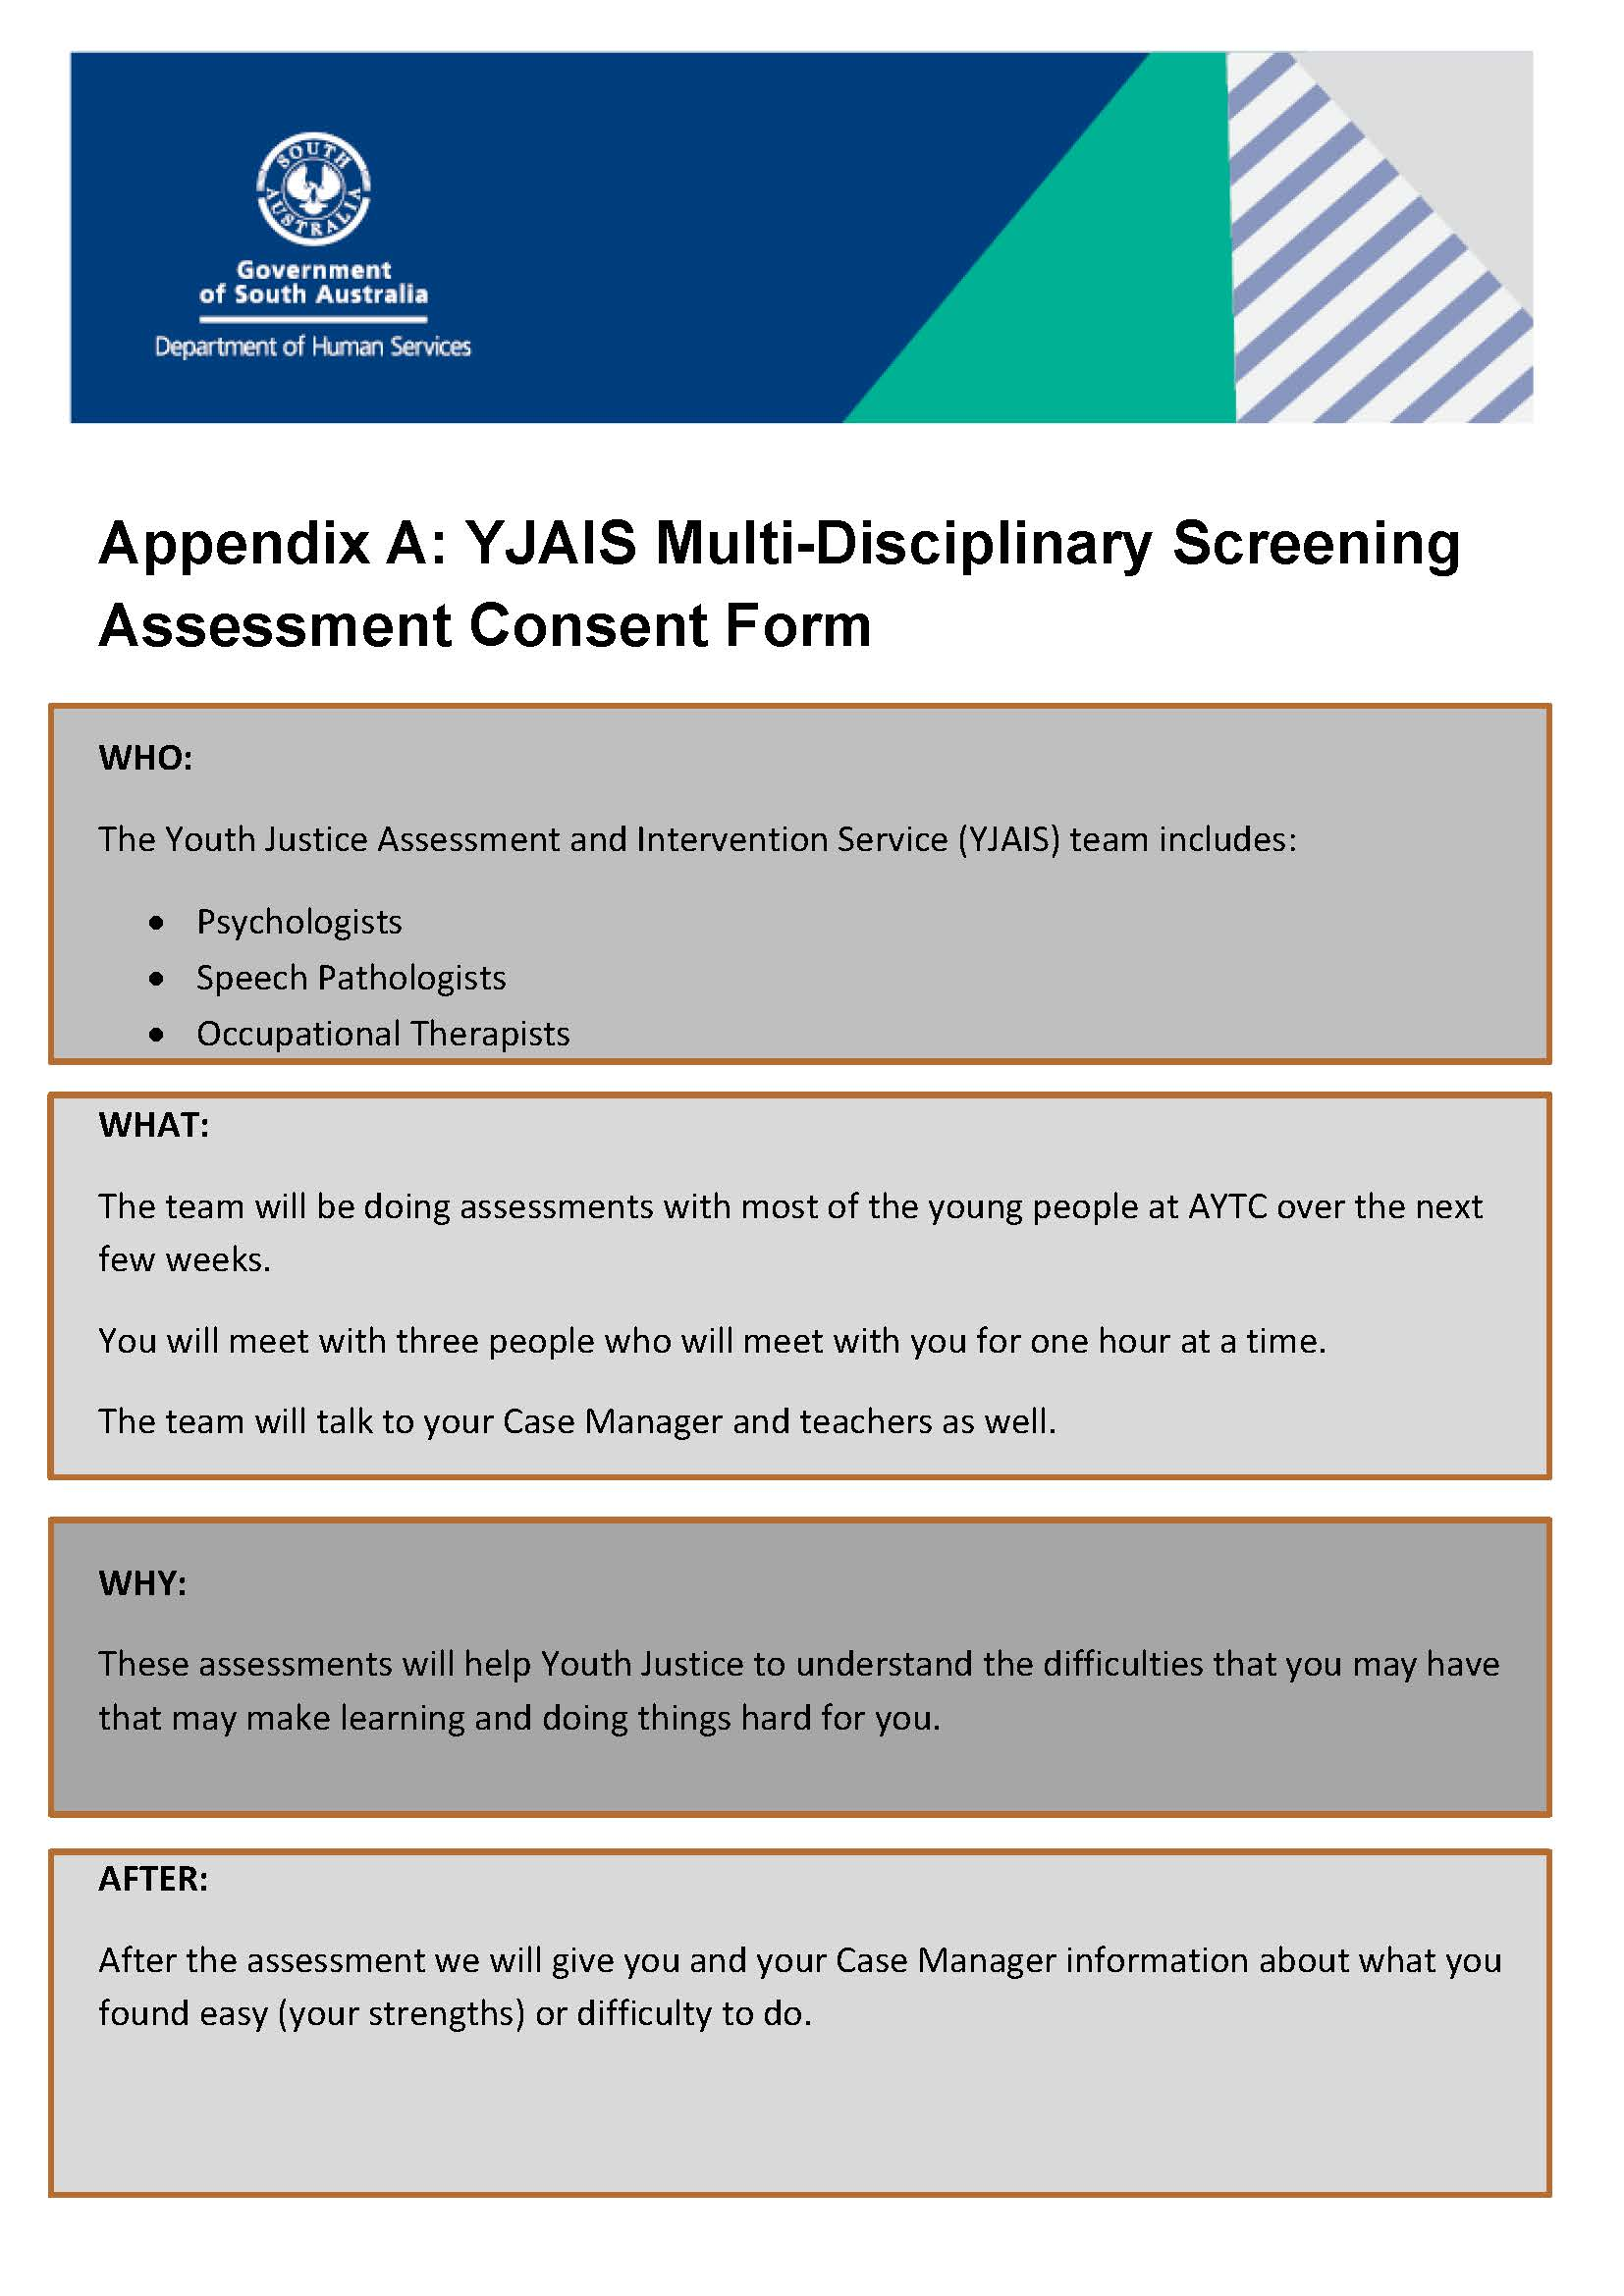 YJAIS multi-disciplinary screening assessment consent form page 1. Form contents: Who: